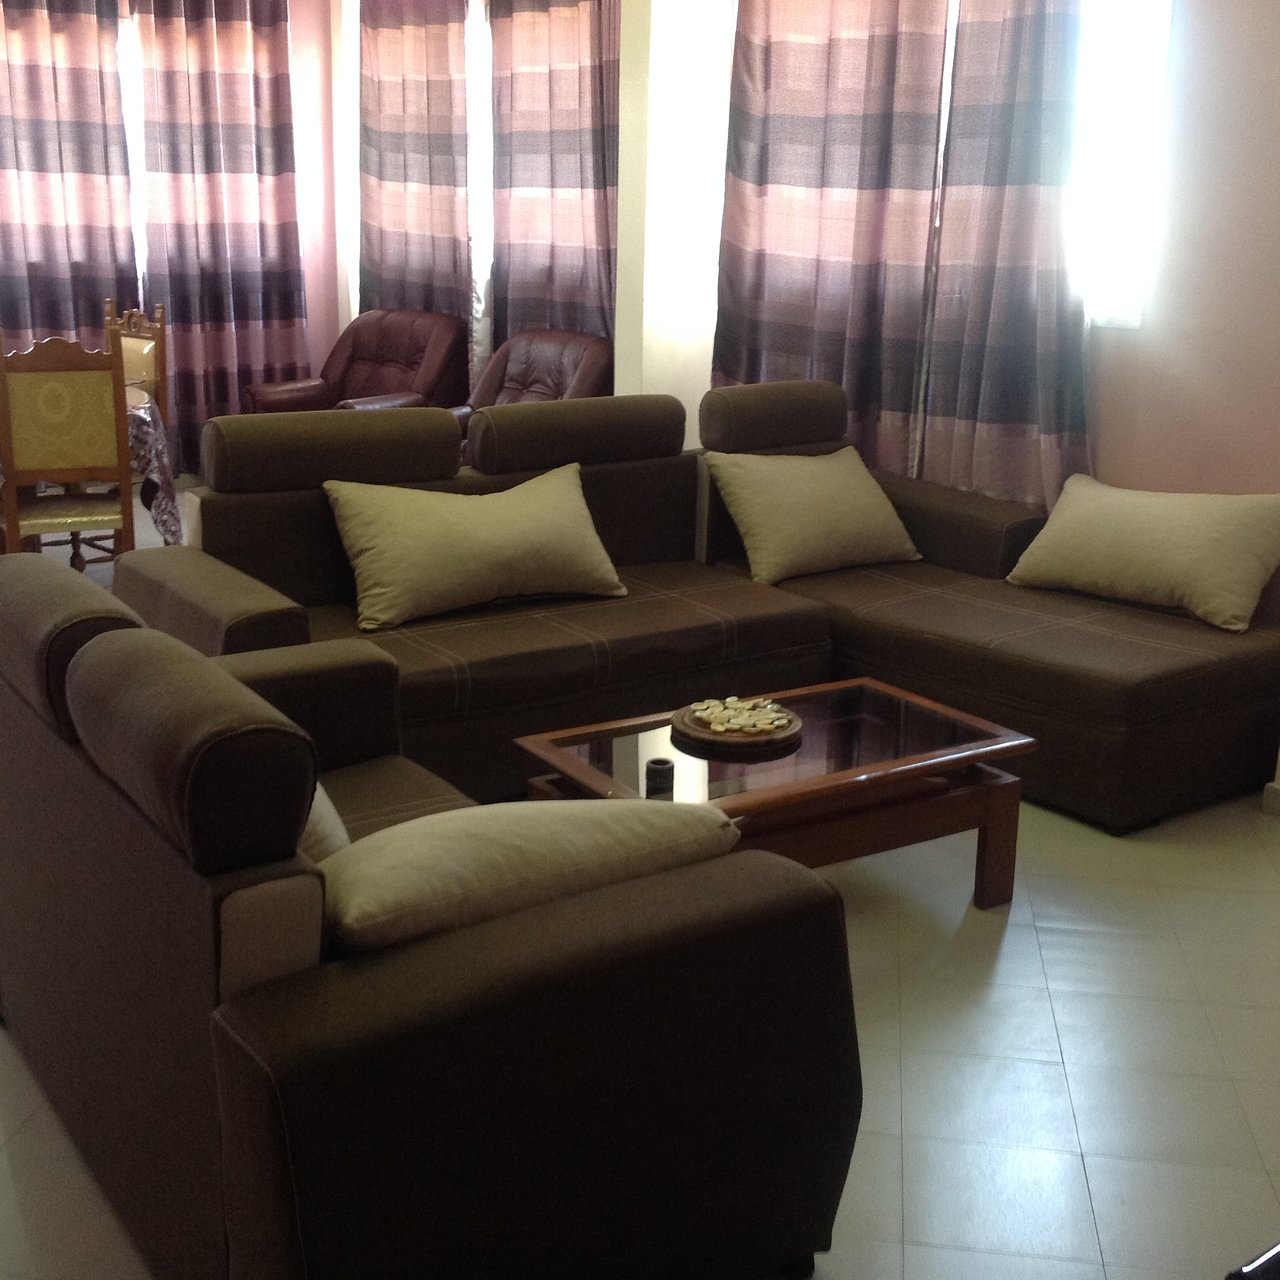 Salon Meuble Senegal Appartements Meubles Chez Mimi Updated 2019 Prices Hotel